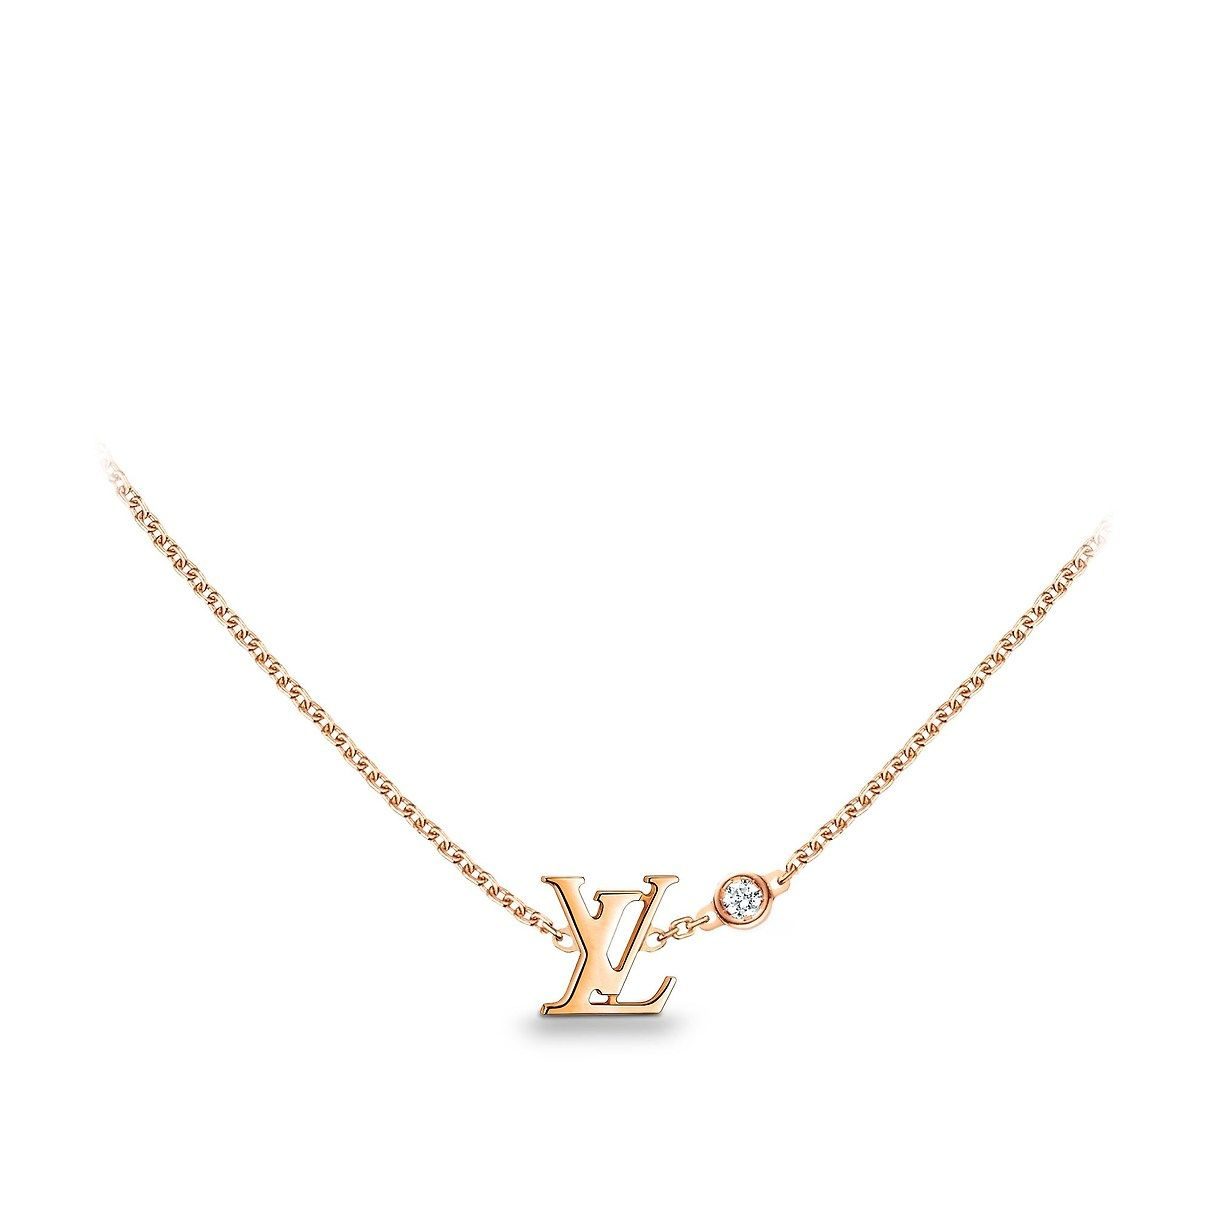 7d7eb96bf4 Idylle Blossom LV Pendant, Pink Gold and Diamond in Women's Jewellery and  Timepieces Fine Jewellery collections by Louis Vuitton